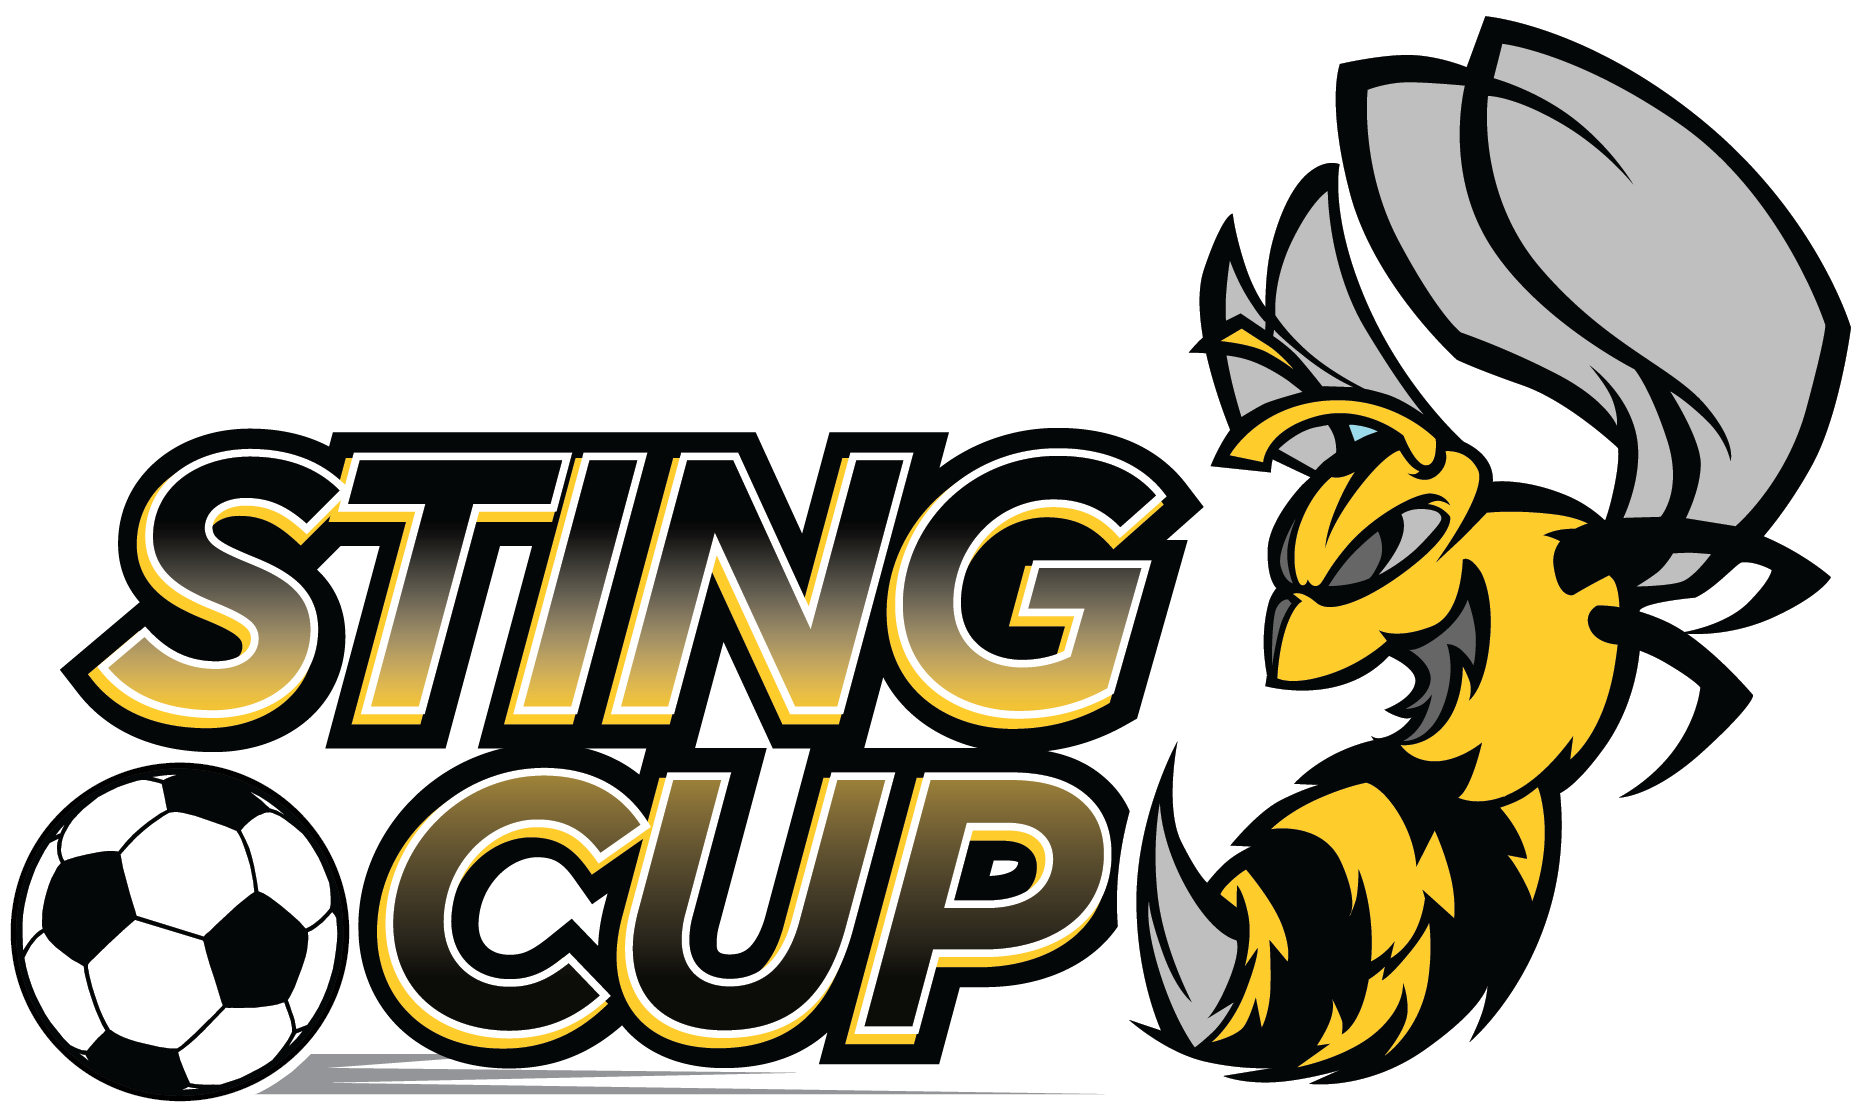 Great end of the. Cup clipart cuo